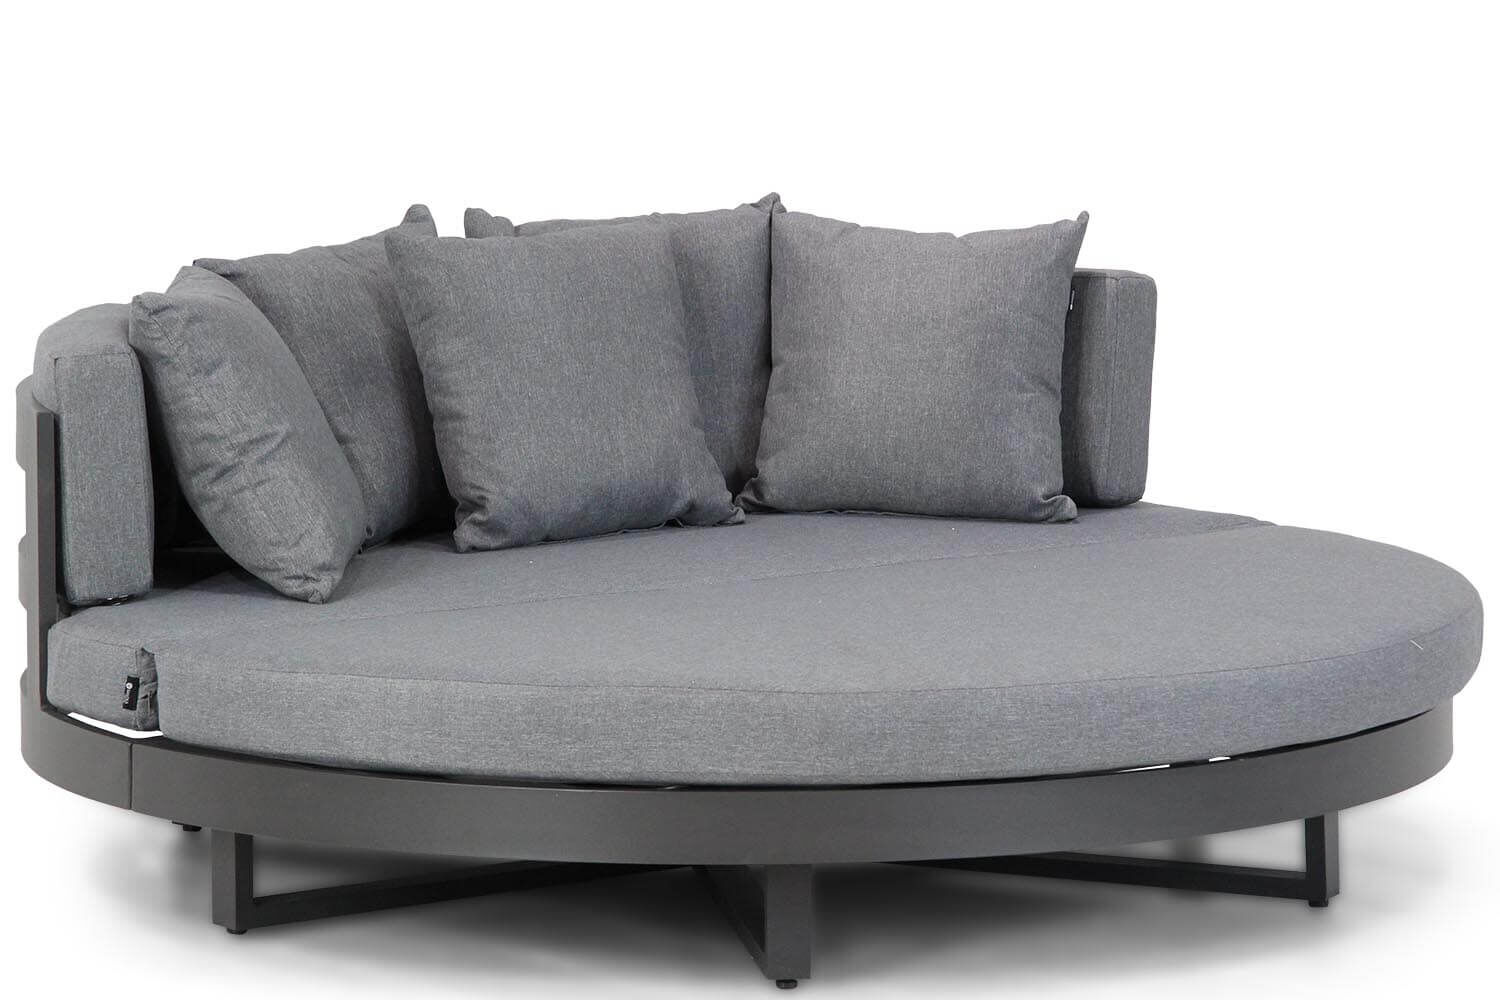 Santika Lakeview daybed antraciet